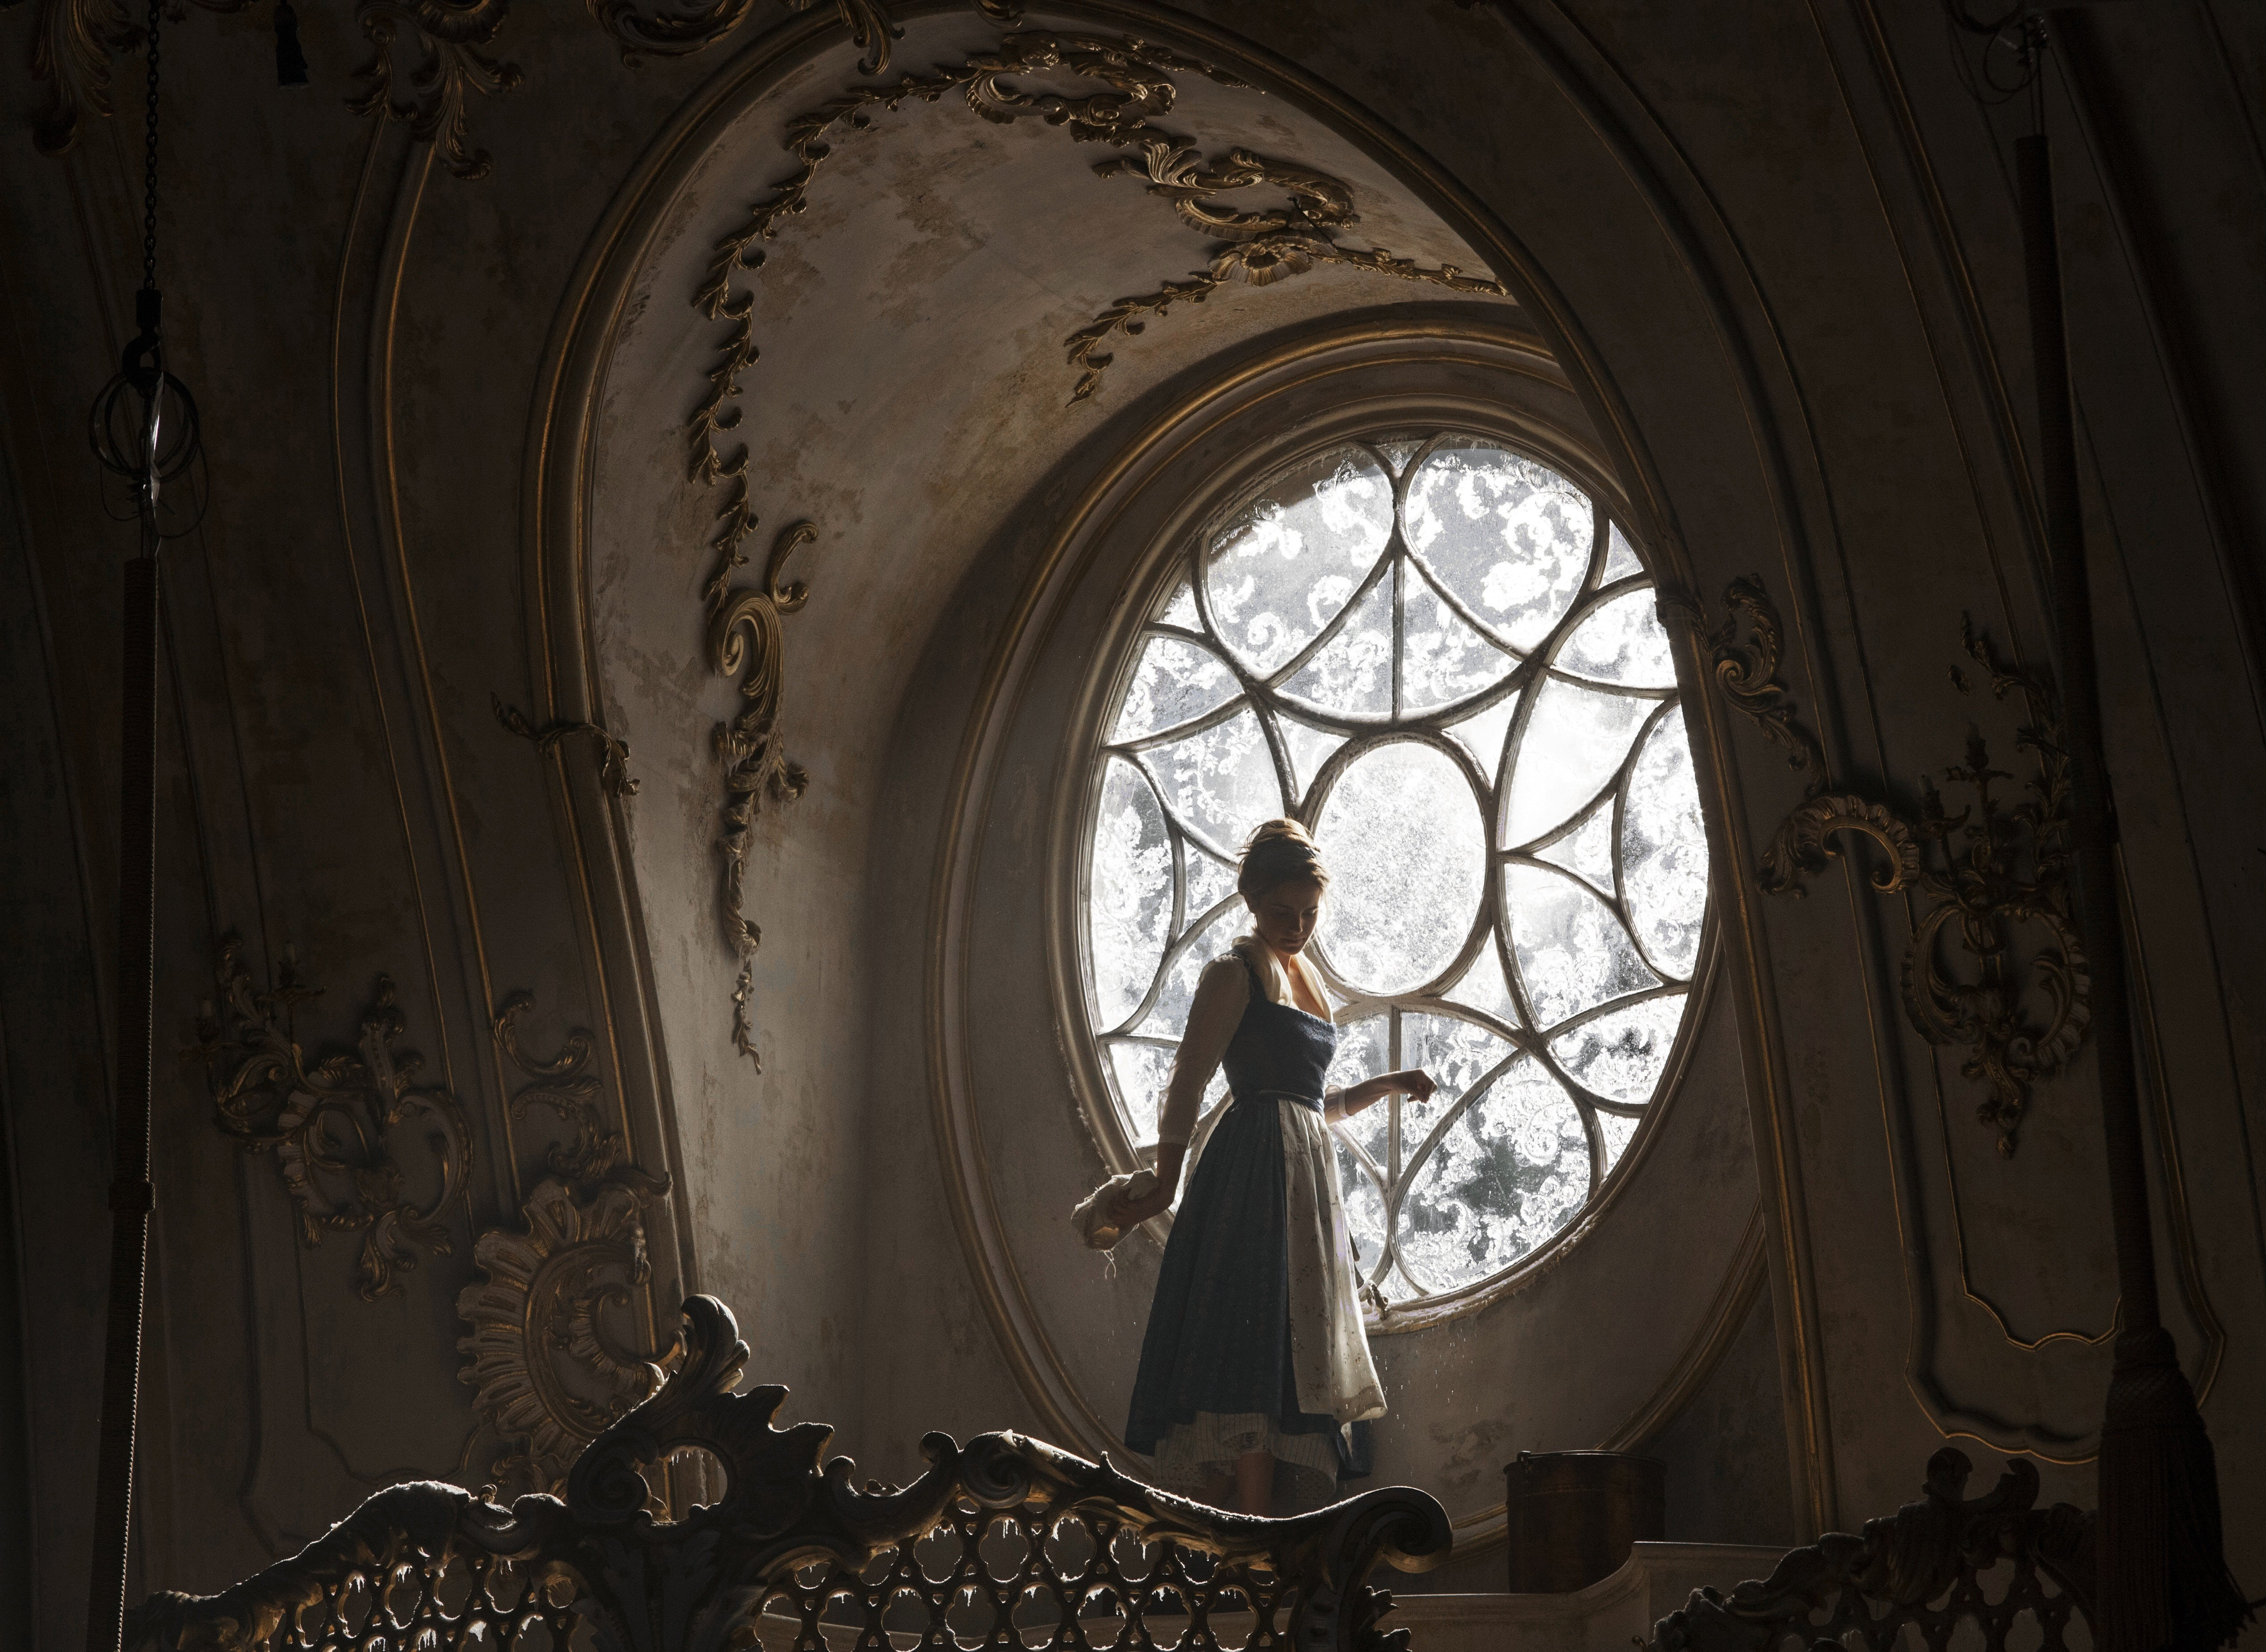 'Beauty and the Beast' sets box-office record for PG-rated movie